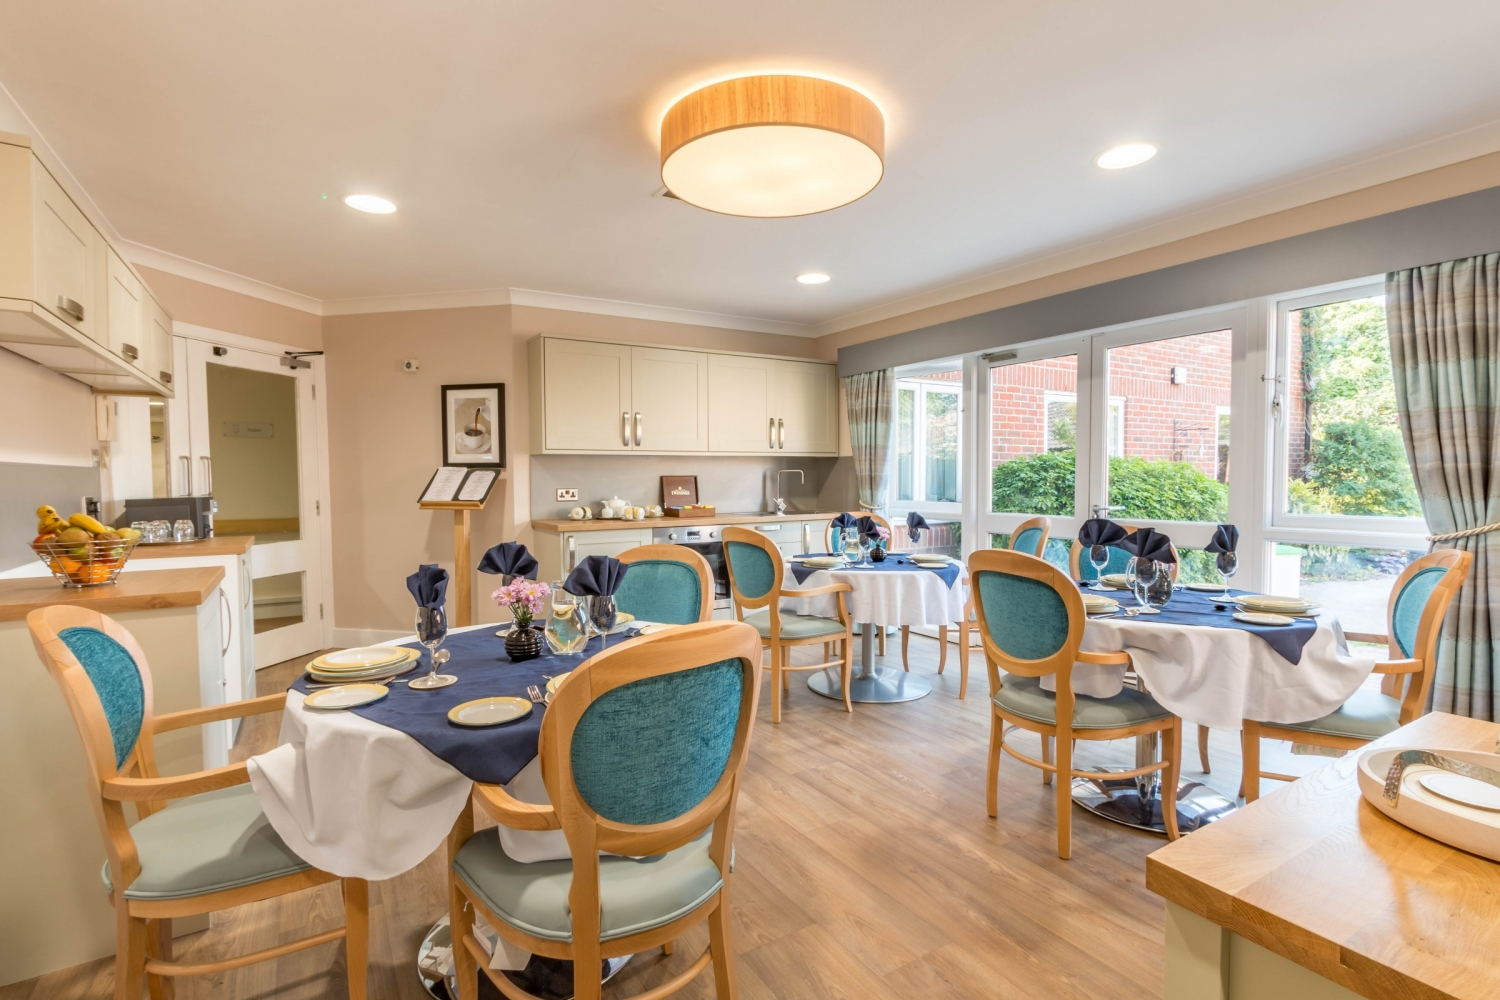 Care Home in Surrey   Ashford House. Care Home in Surrey   Ashford House   Barchester Healthcare